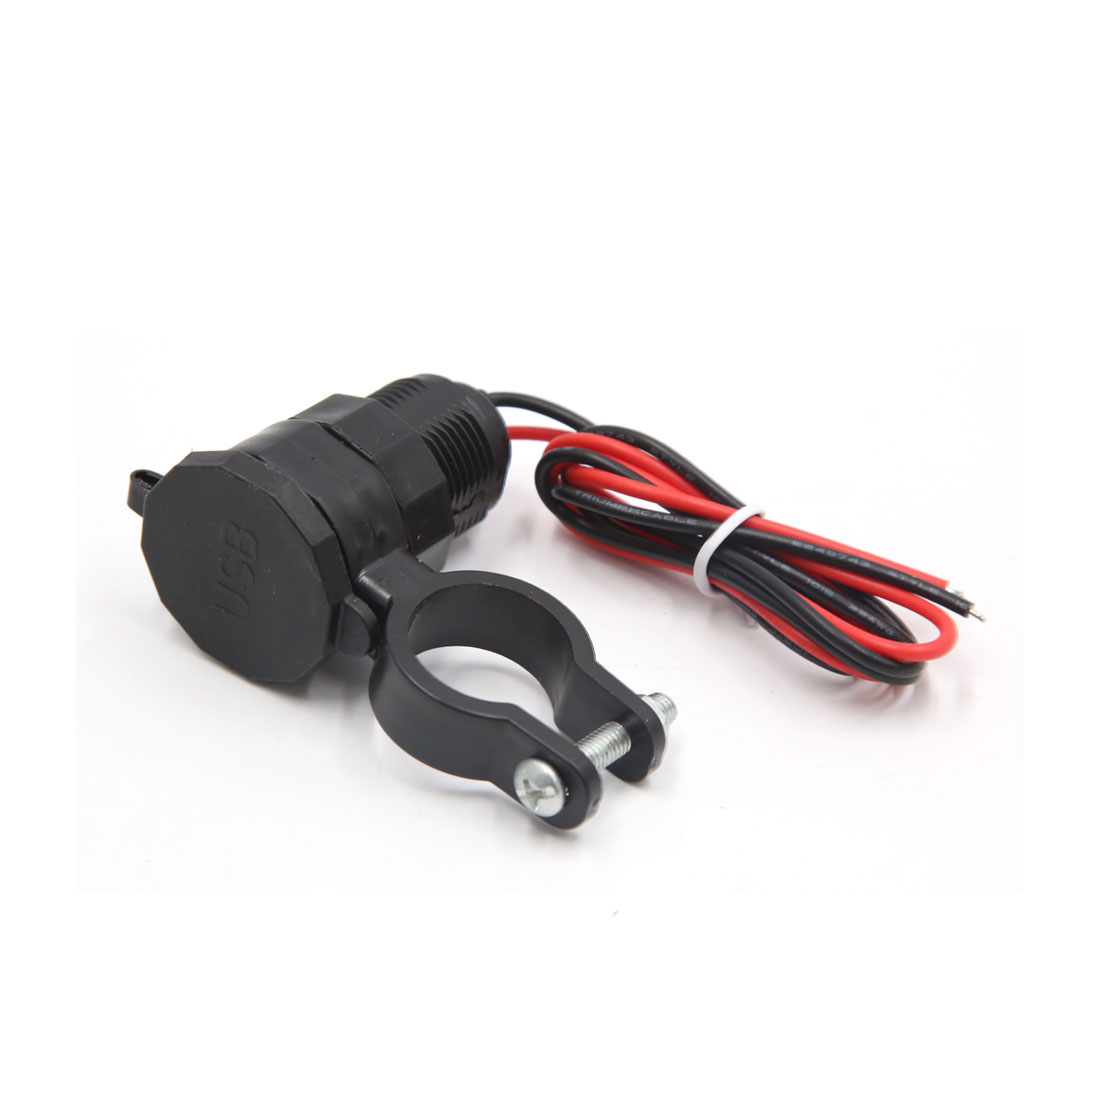 Black Waterproof Cell Phone Power Supply USB Charger Adaptor for Motorcycle